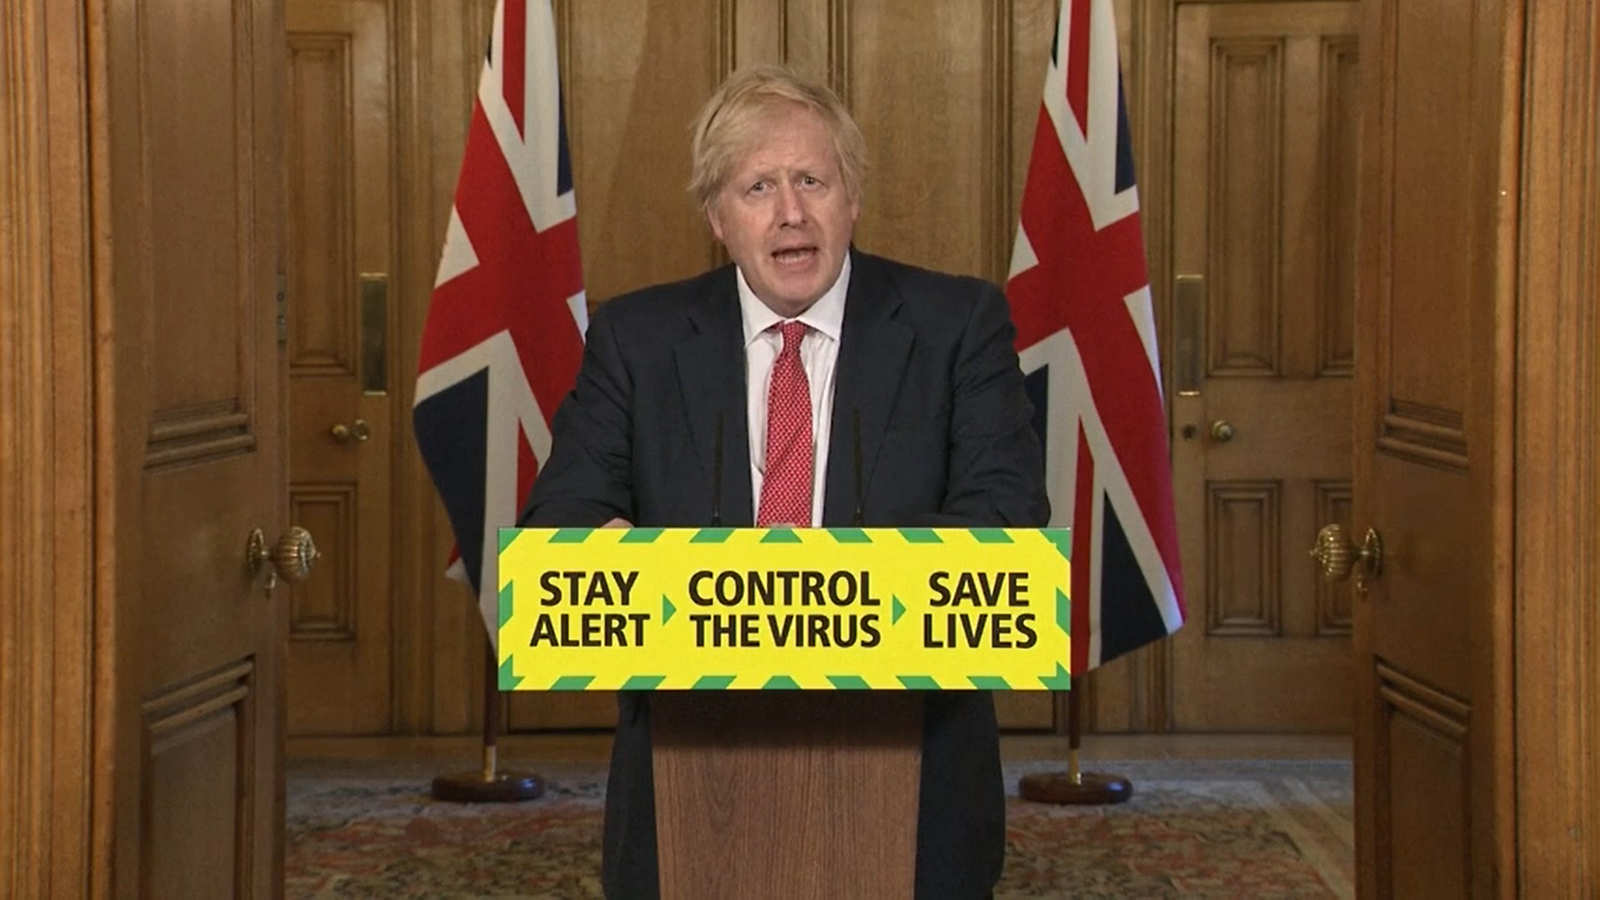 Prime Minister Boris Johnson during a media briefing on coronavirus in Downing Street, London, on Monday, May 11.